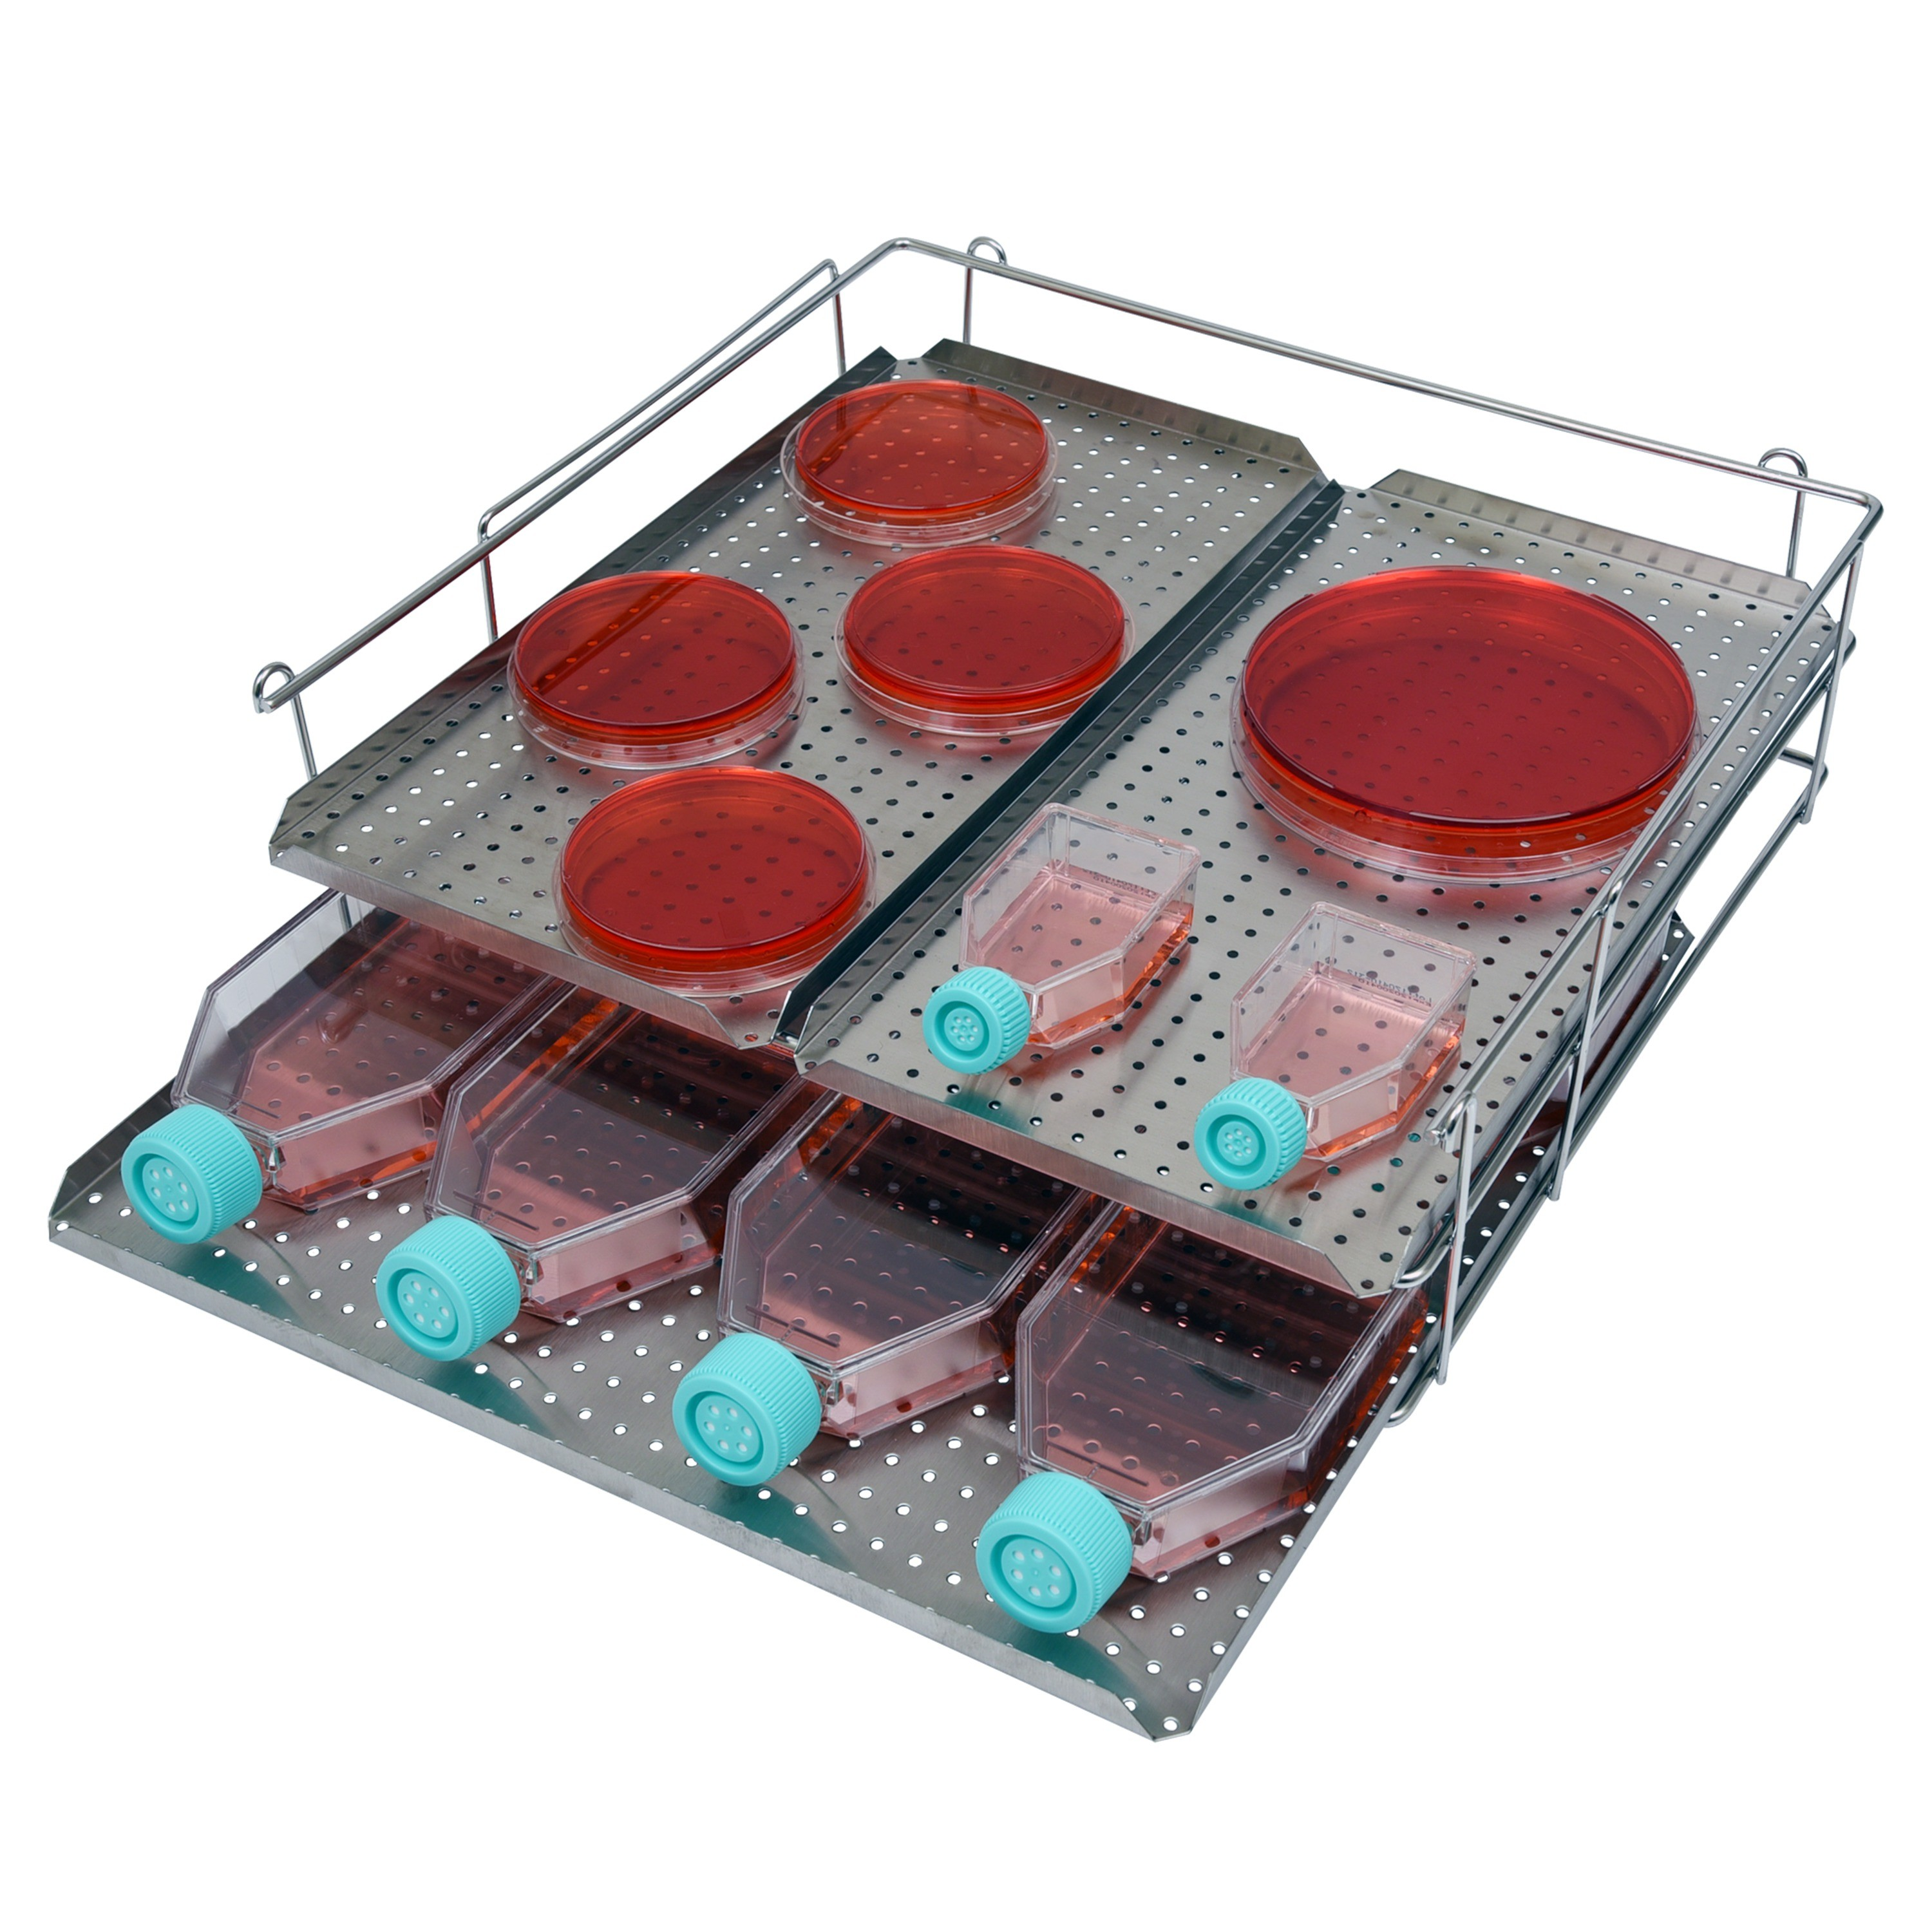 ProCulture Stak-A-Tray System